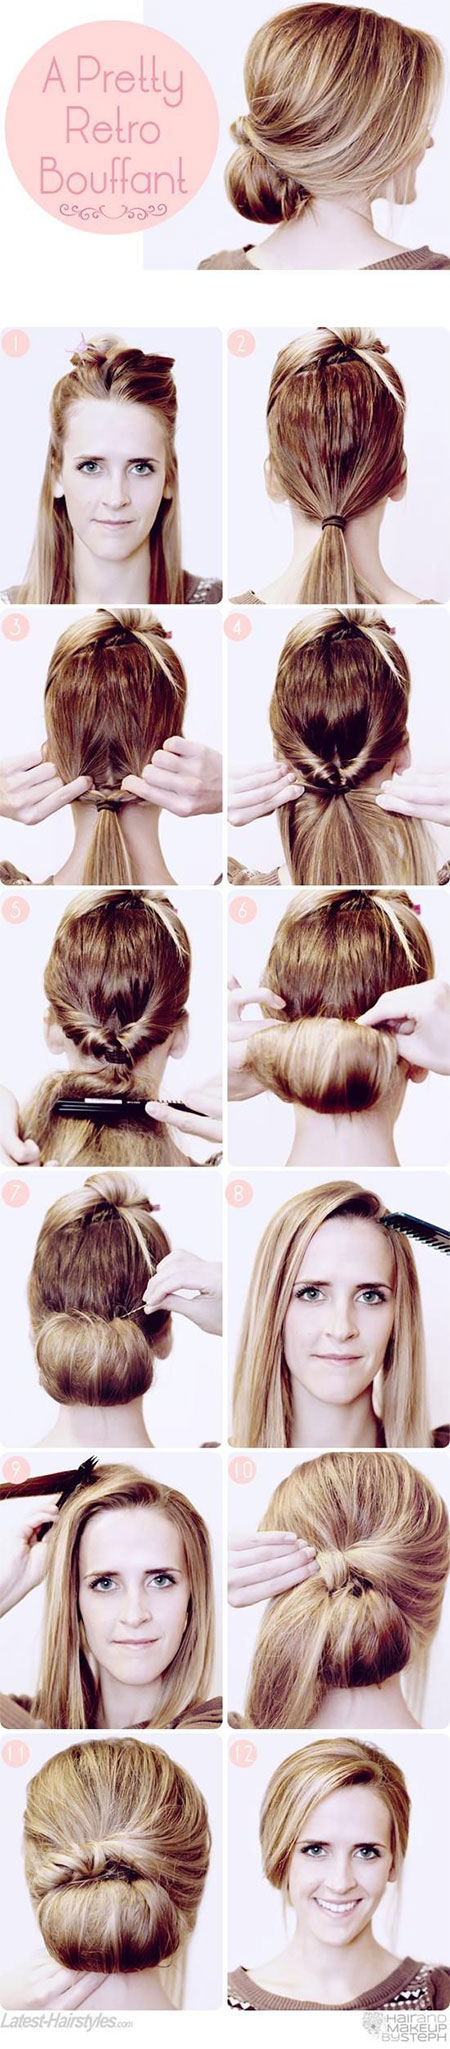 Astonishing 25 Fun Amp Quick Spring Amp Summer Hairstyle Tutorials 2014 For Hairstyles For Women Draintrainus